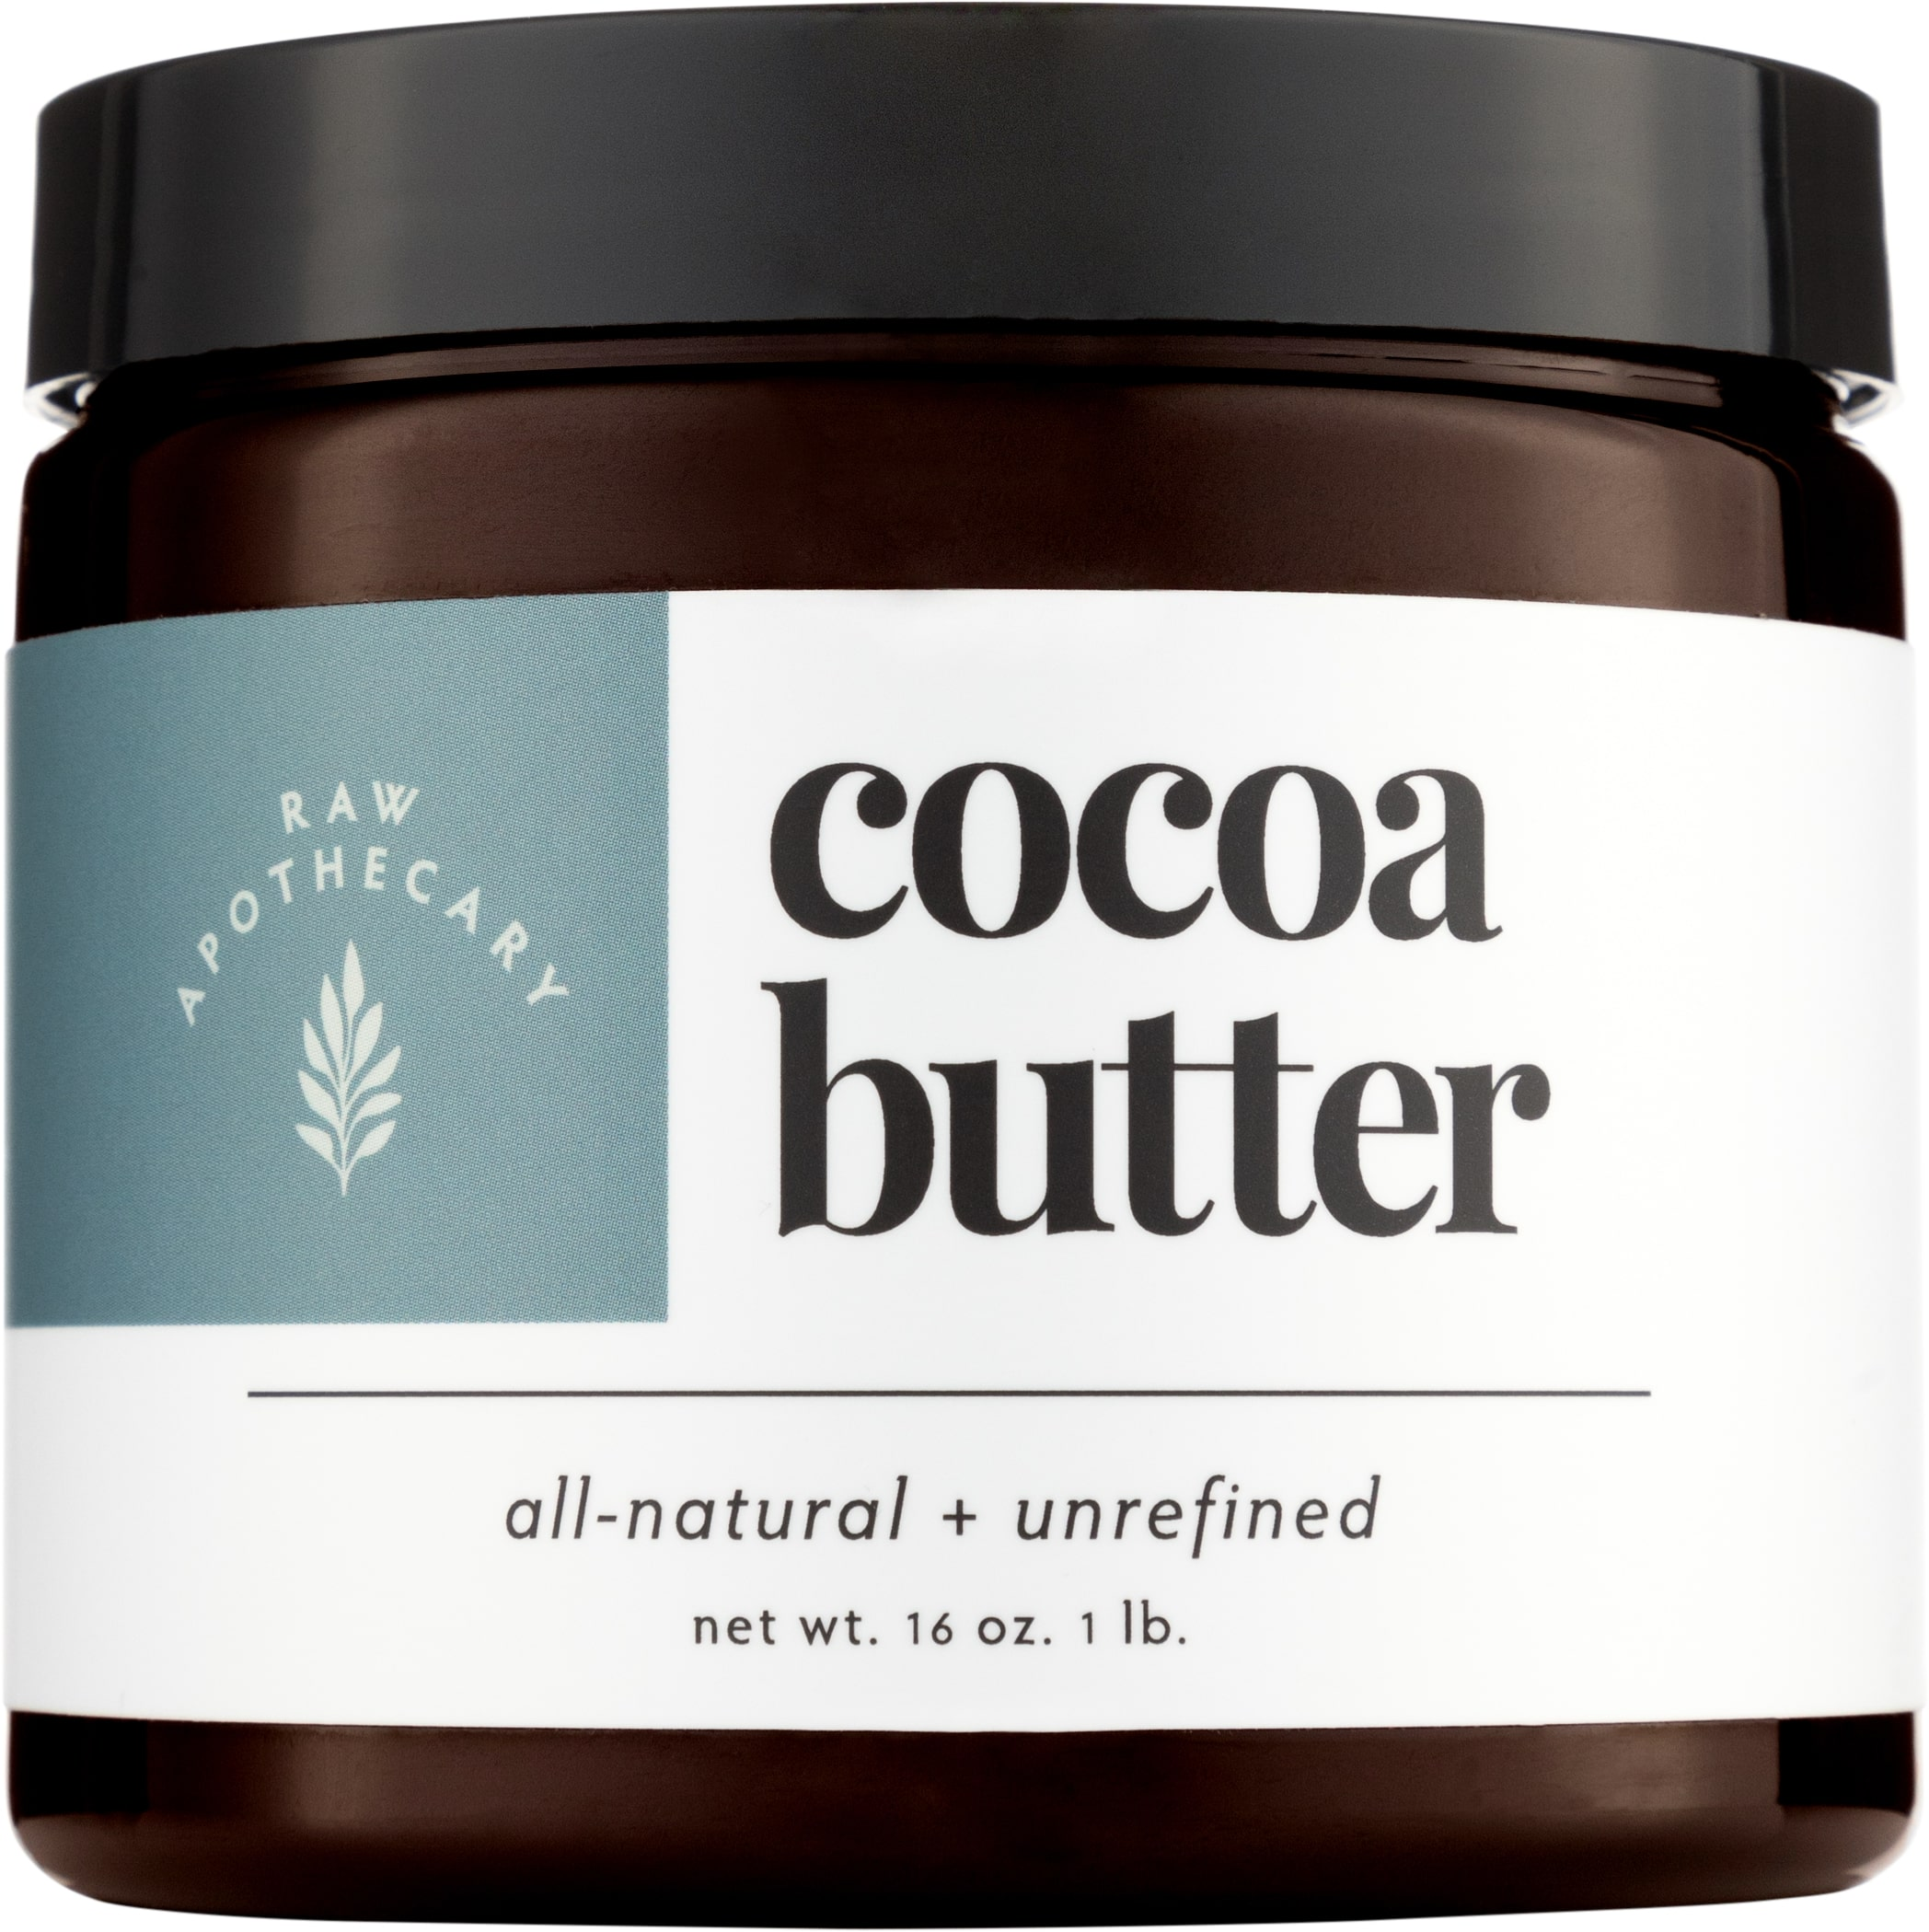 cocoabutter-16oz-front.jpg